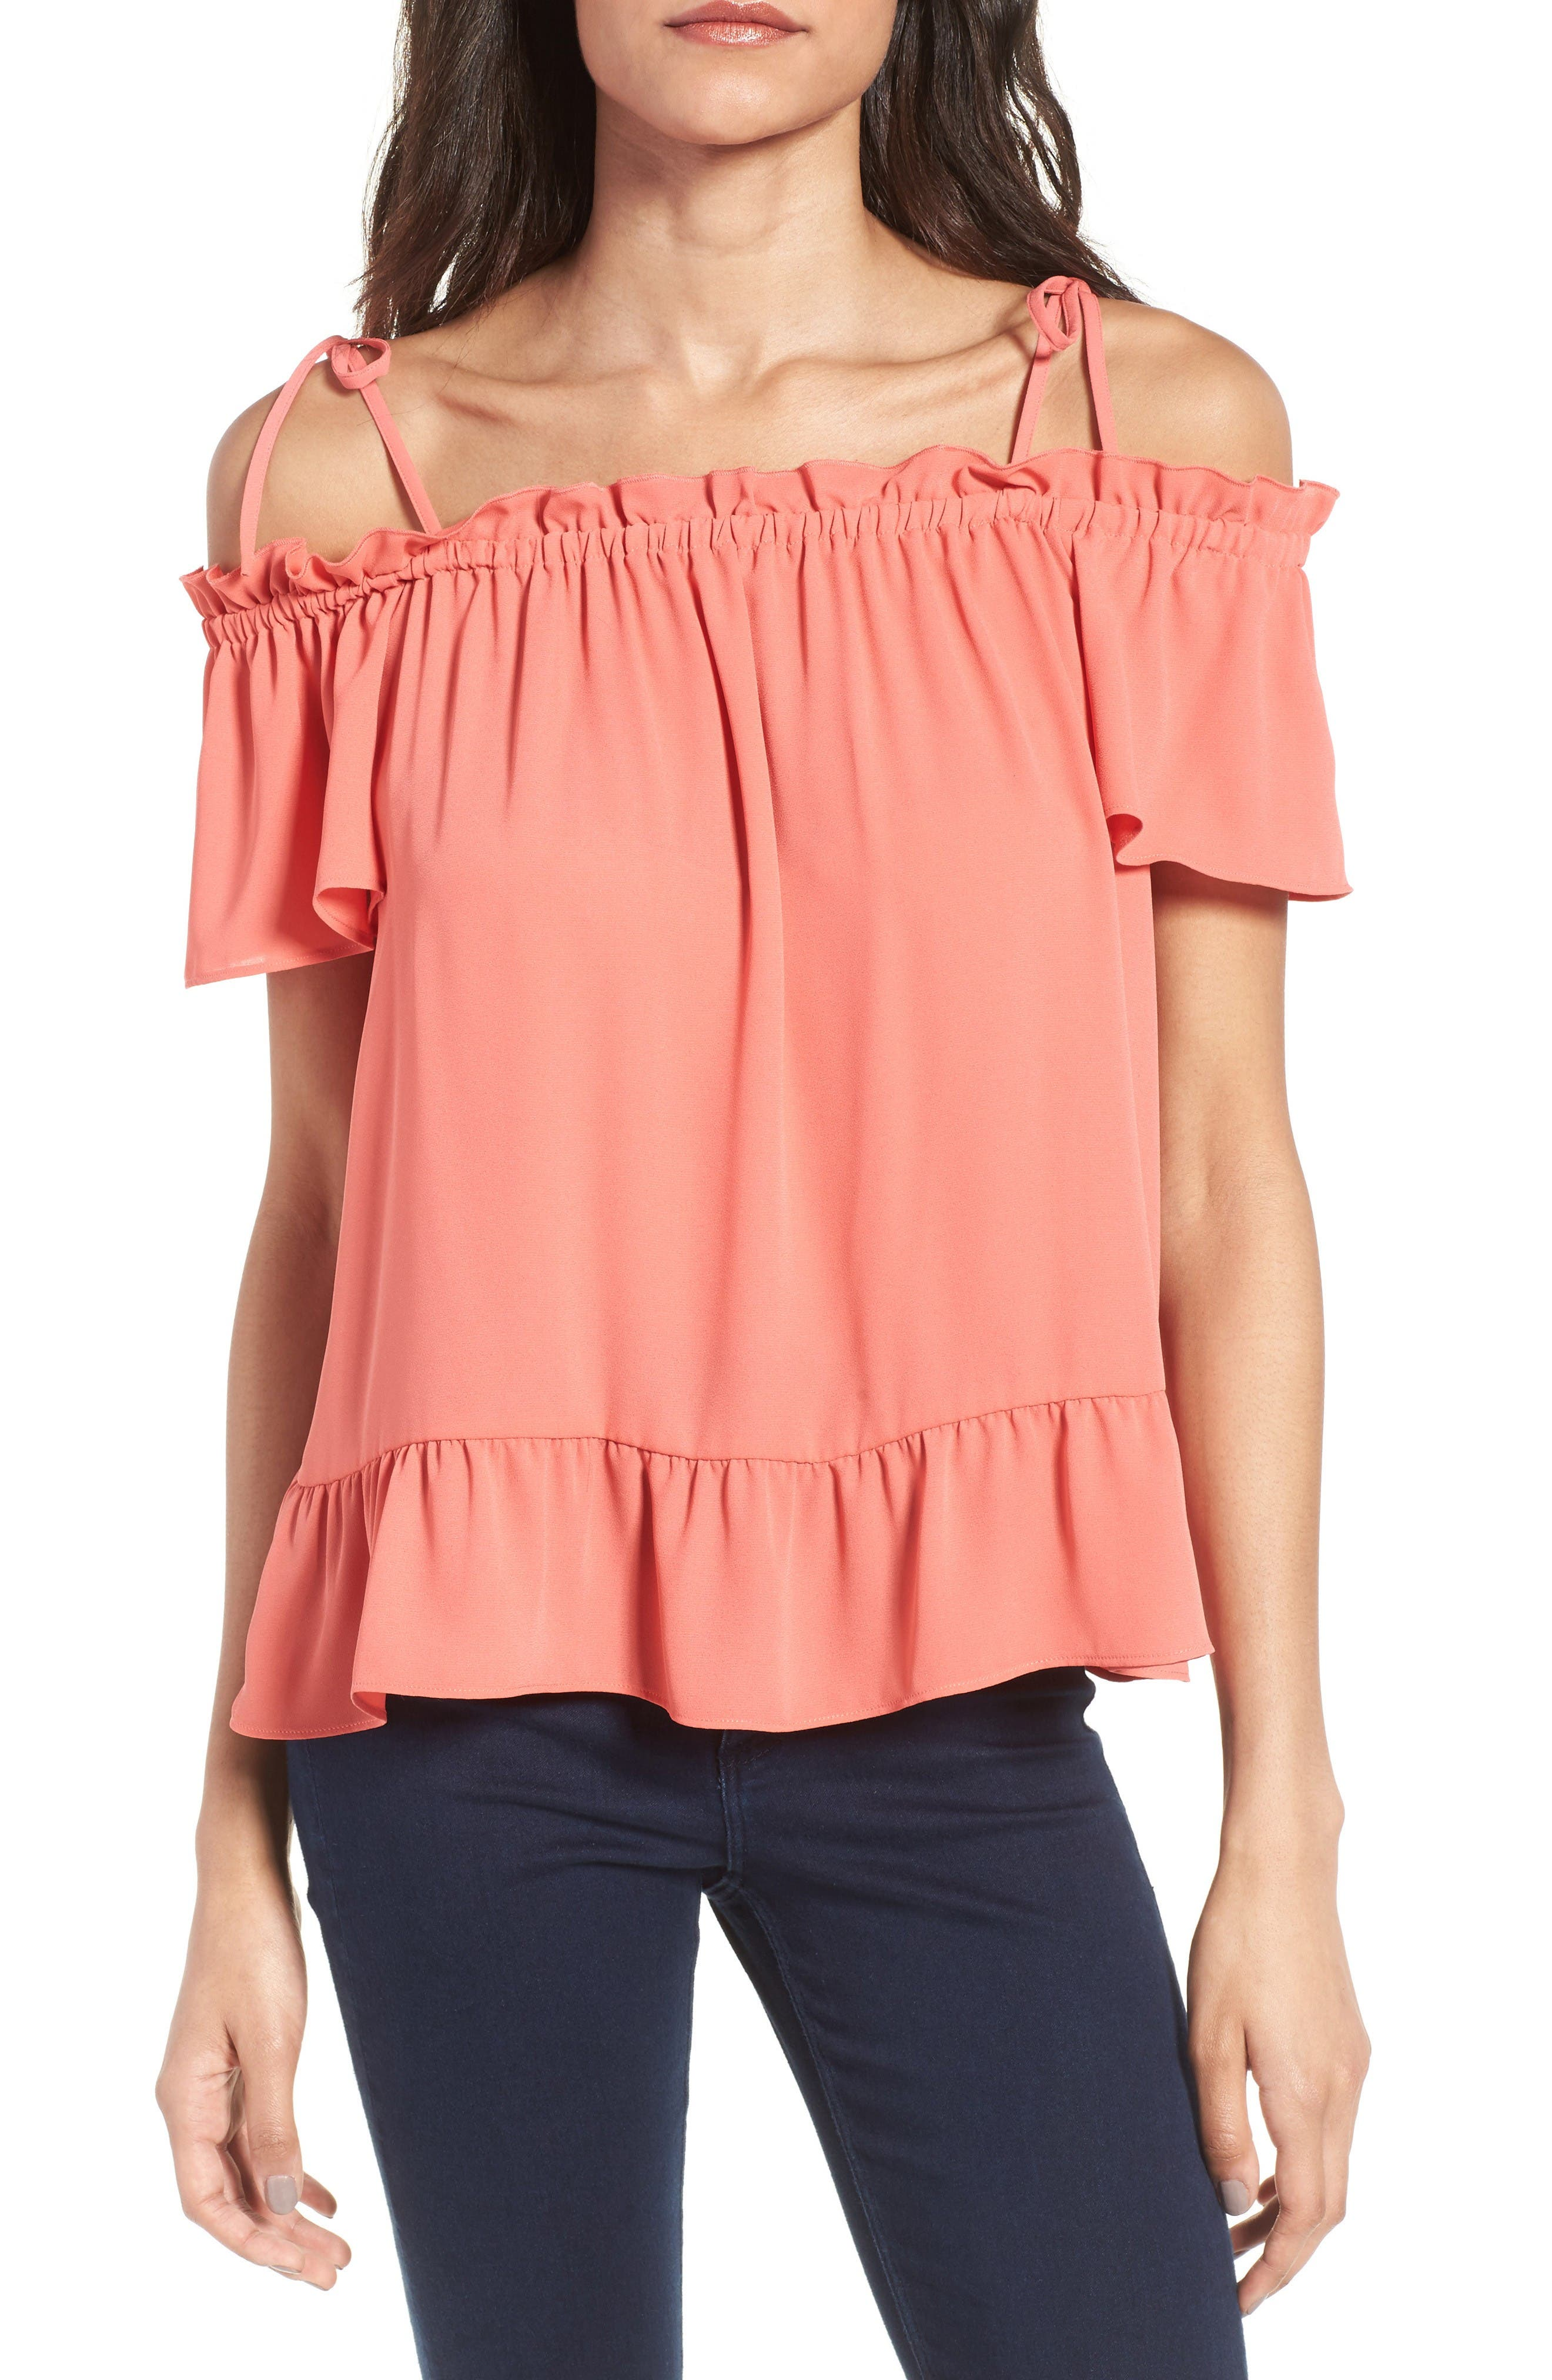 Alternate Image 1 Selected - Chelsea28 Ruffle Off the Shoulder Top